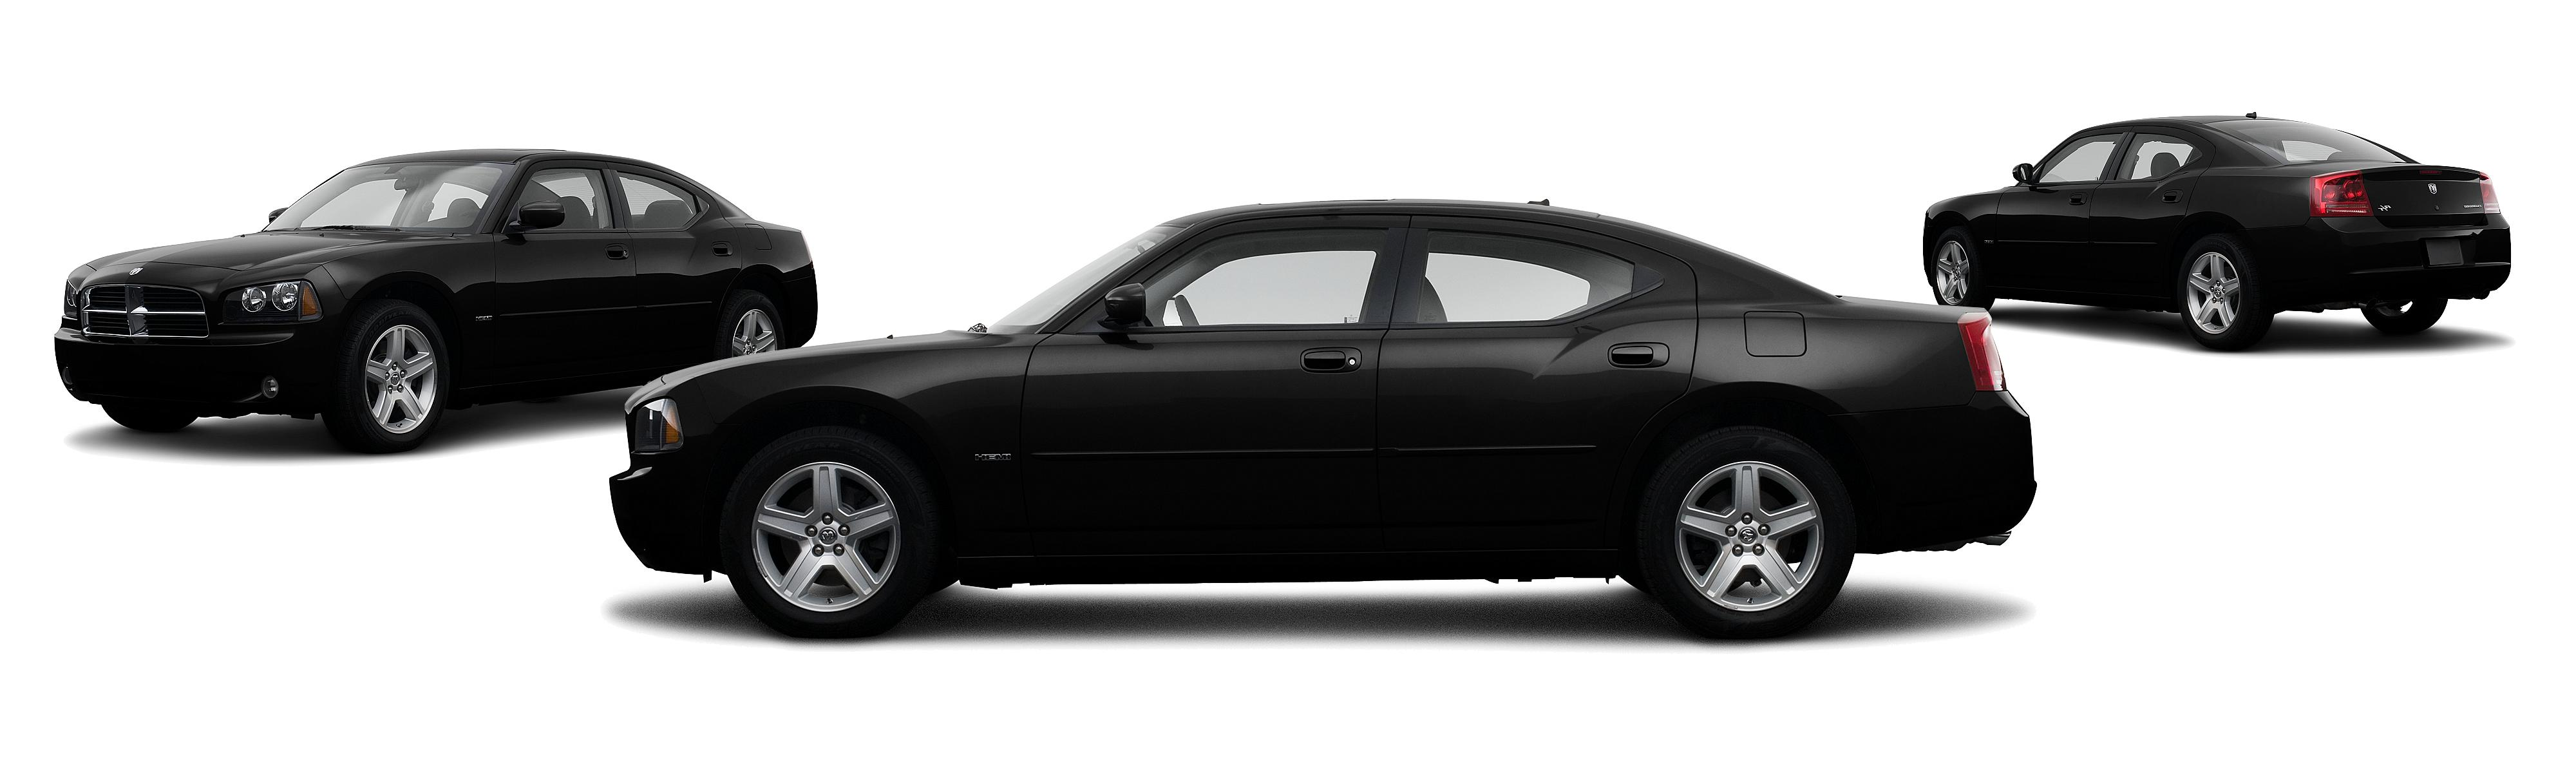 2008 Dodge Charger RT 4dr Sedan Research GrooveCar